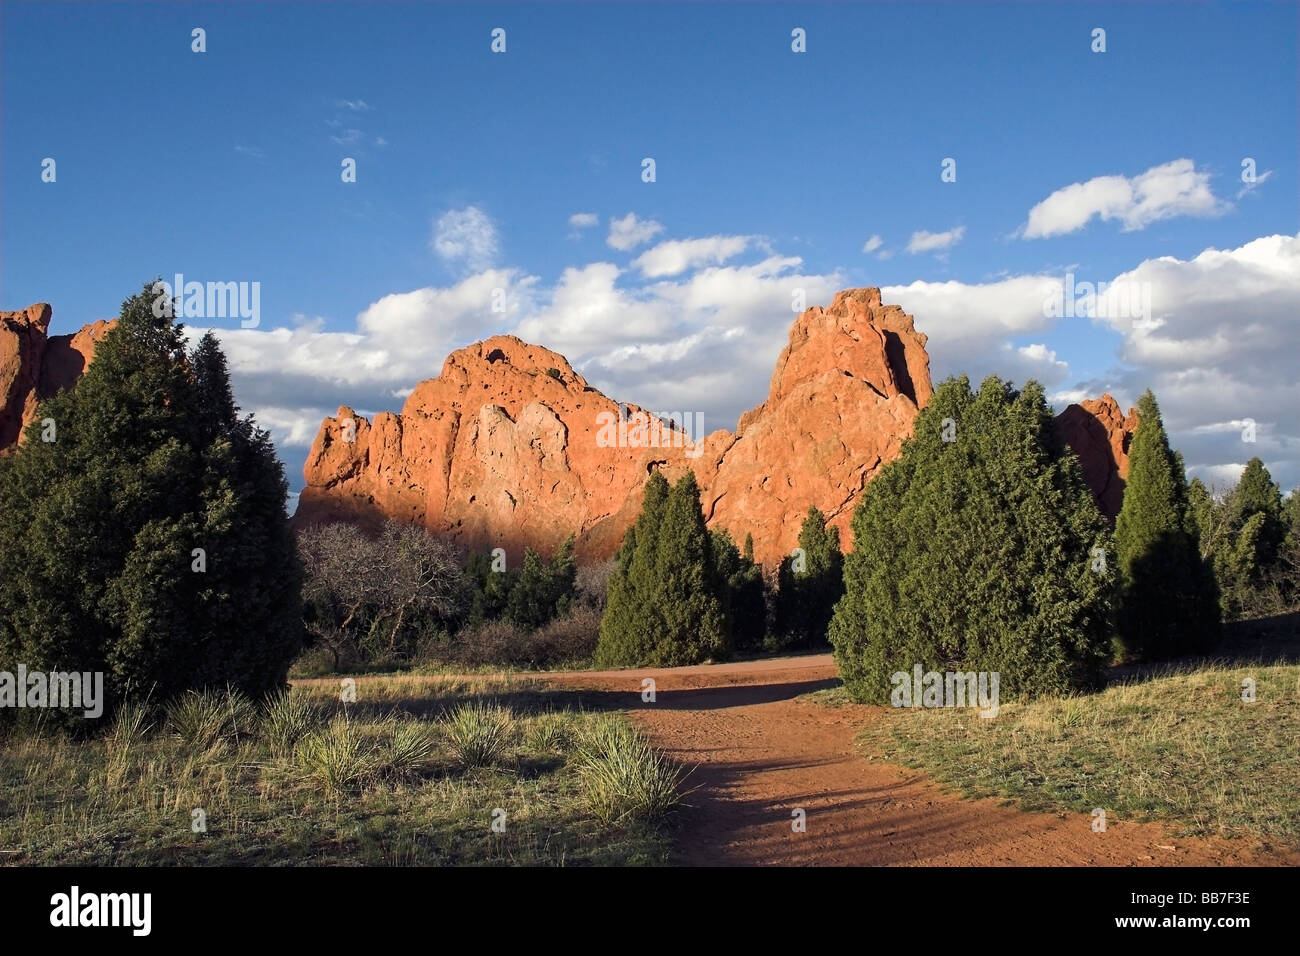 The garden of the gods at sunset - Stock Image